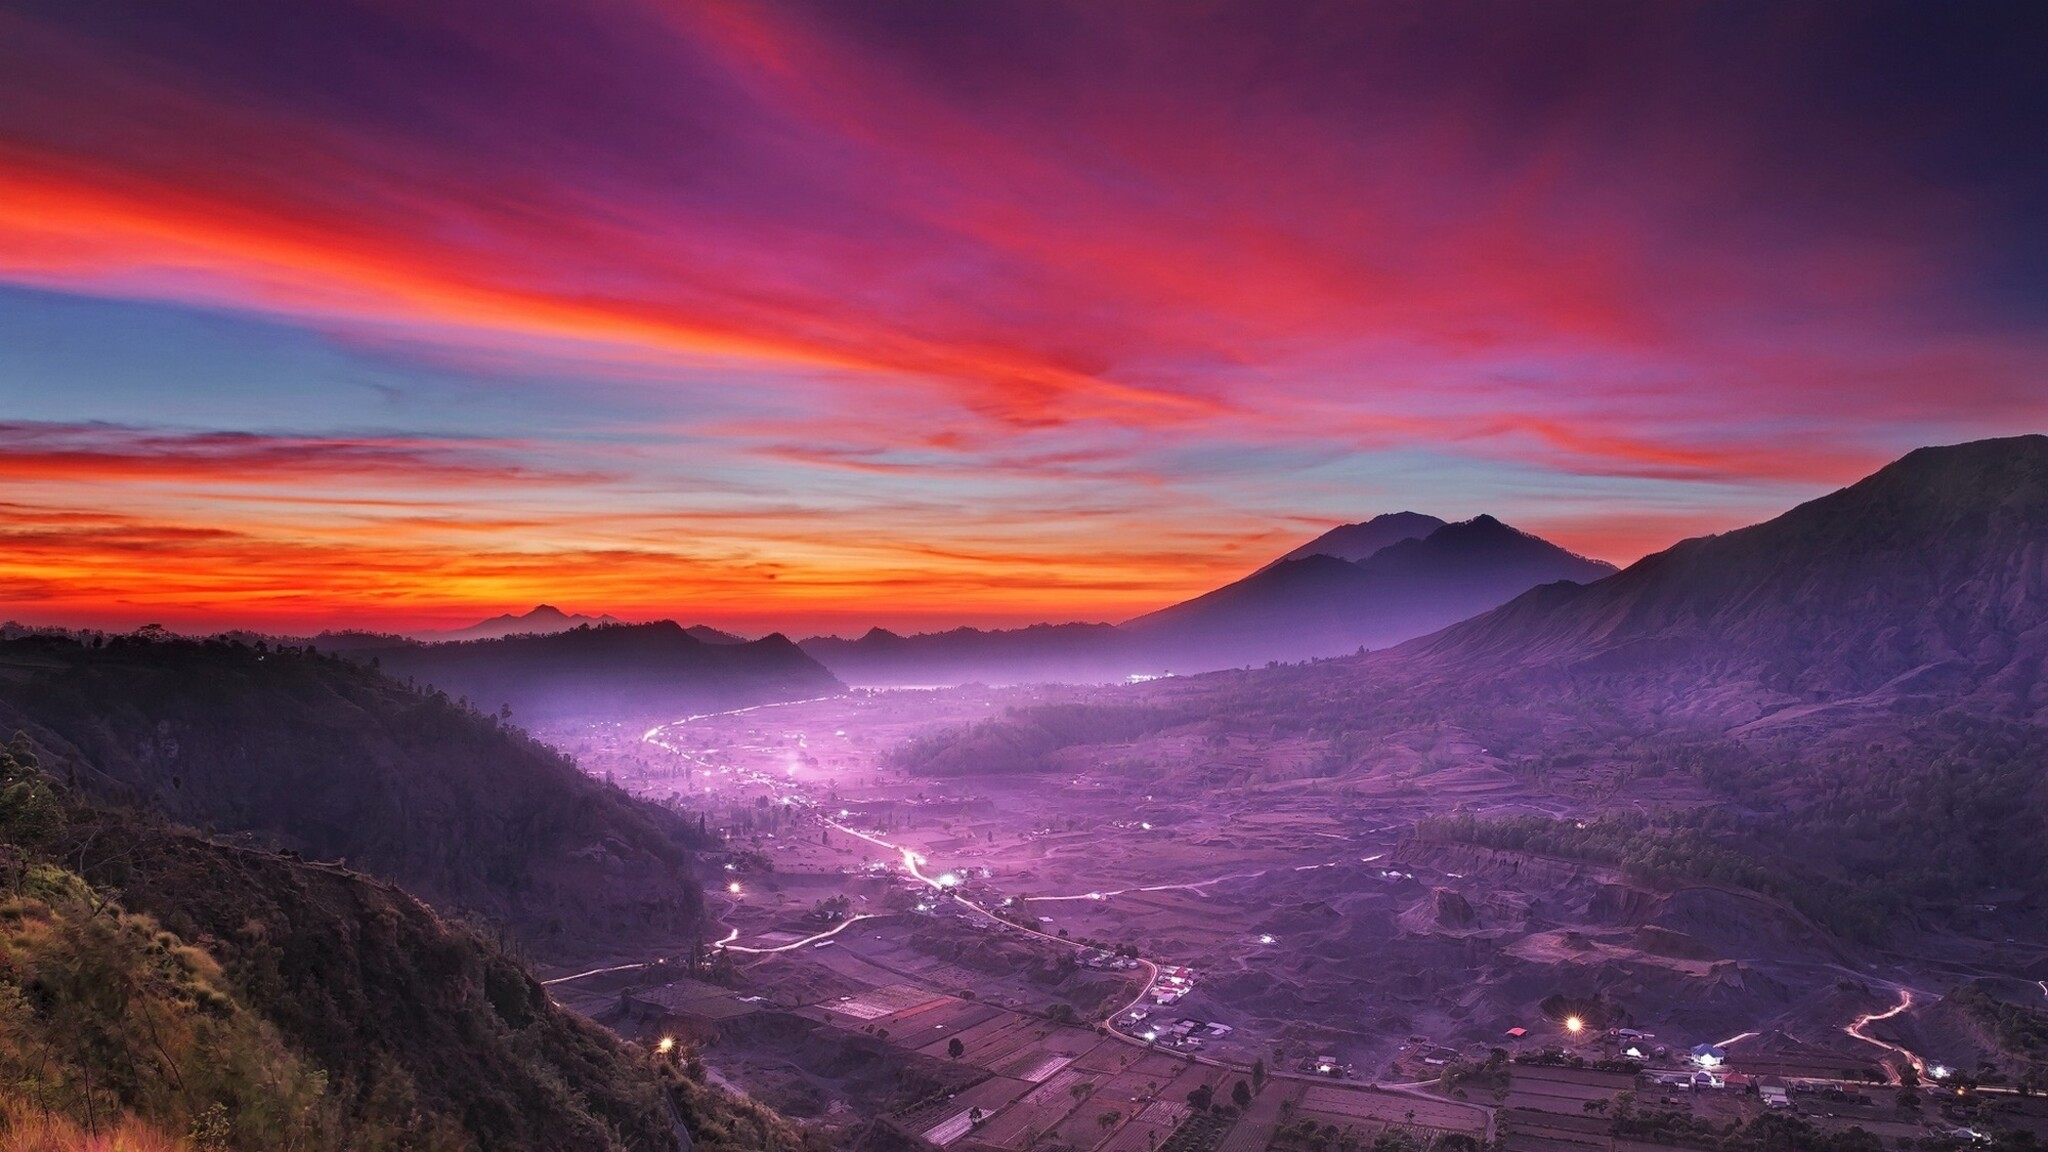 Cute Wallpapers  2048x1152 Indonesia Landscape Nature 2048x1152 Resolution